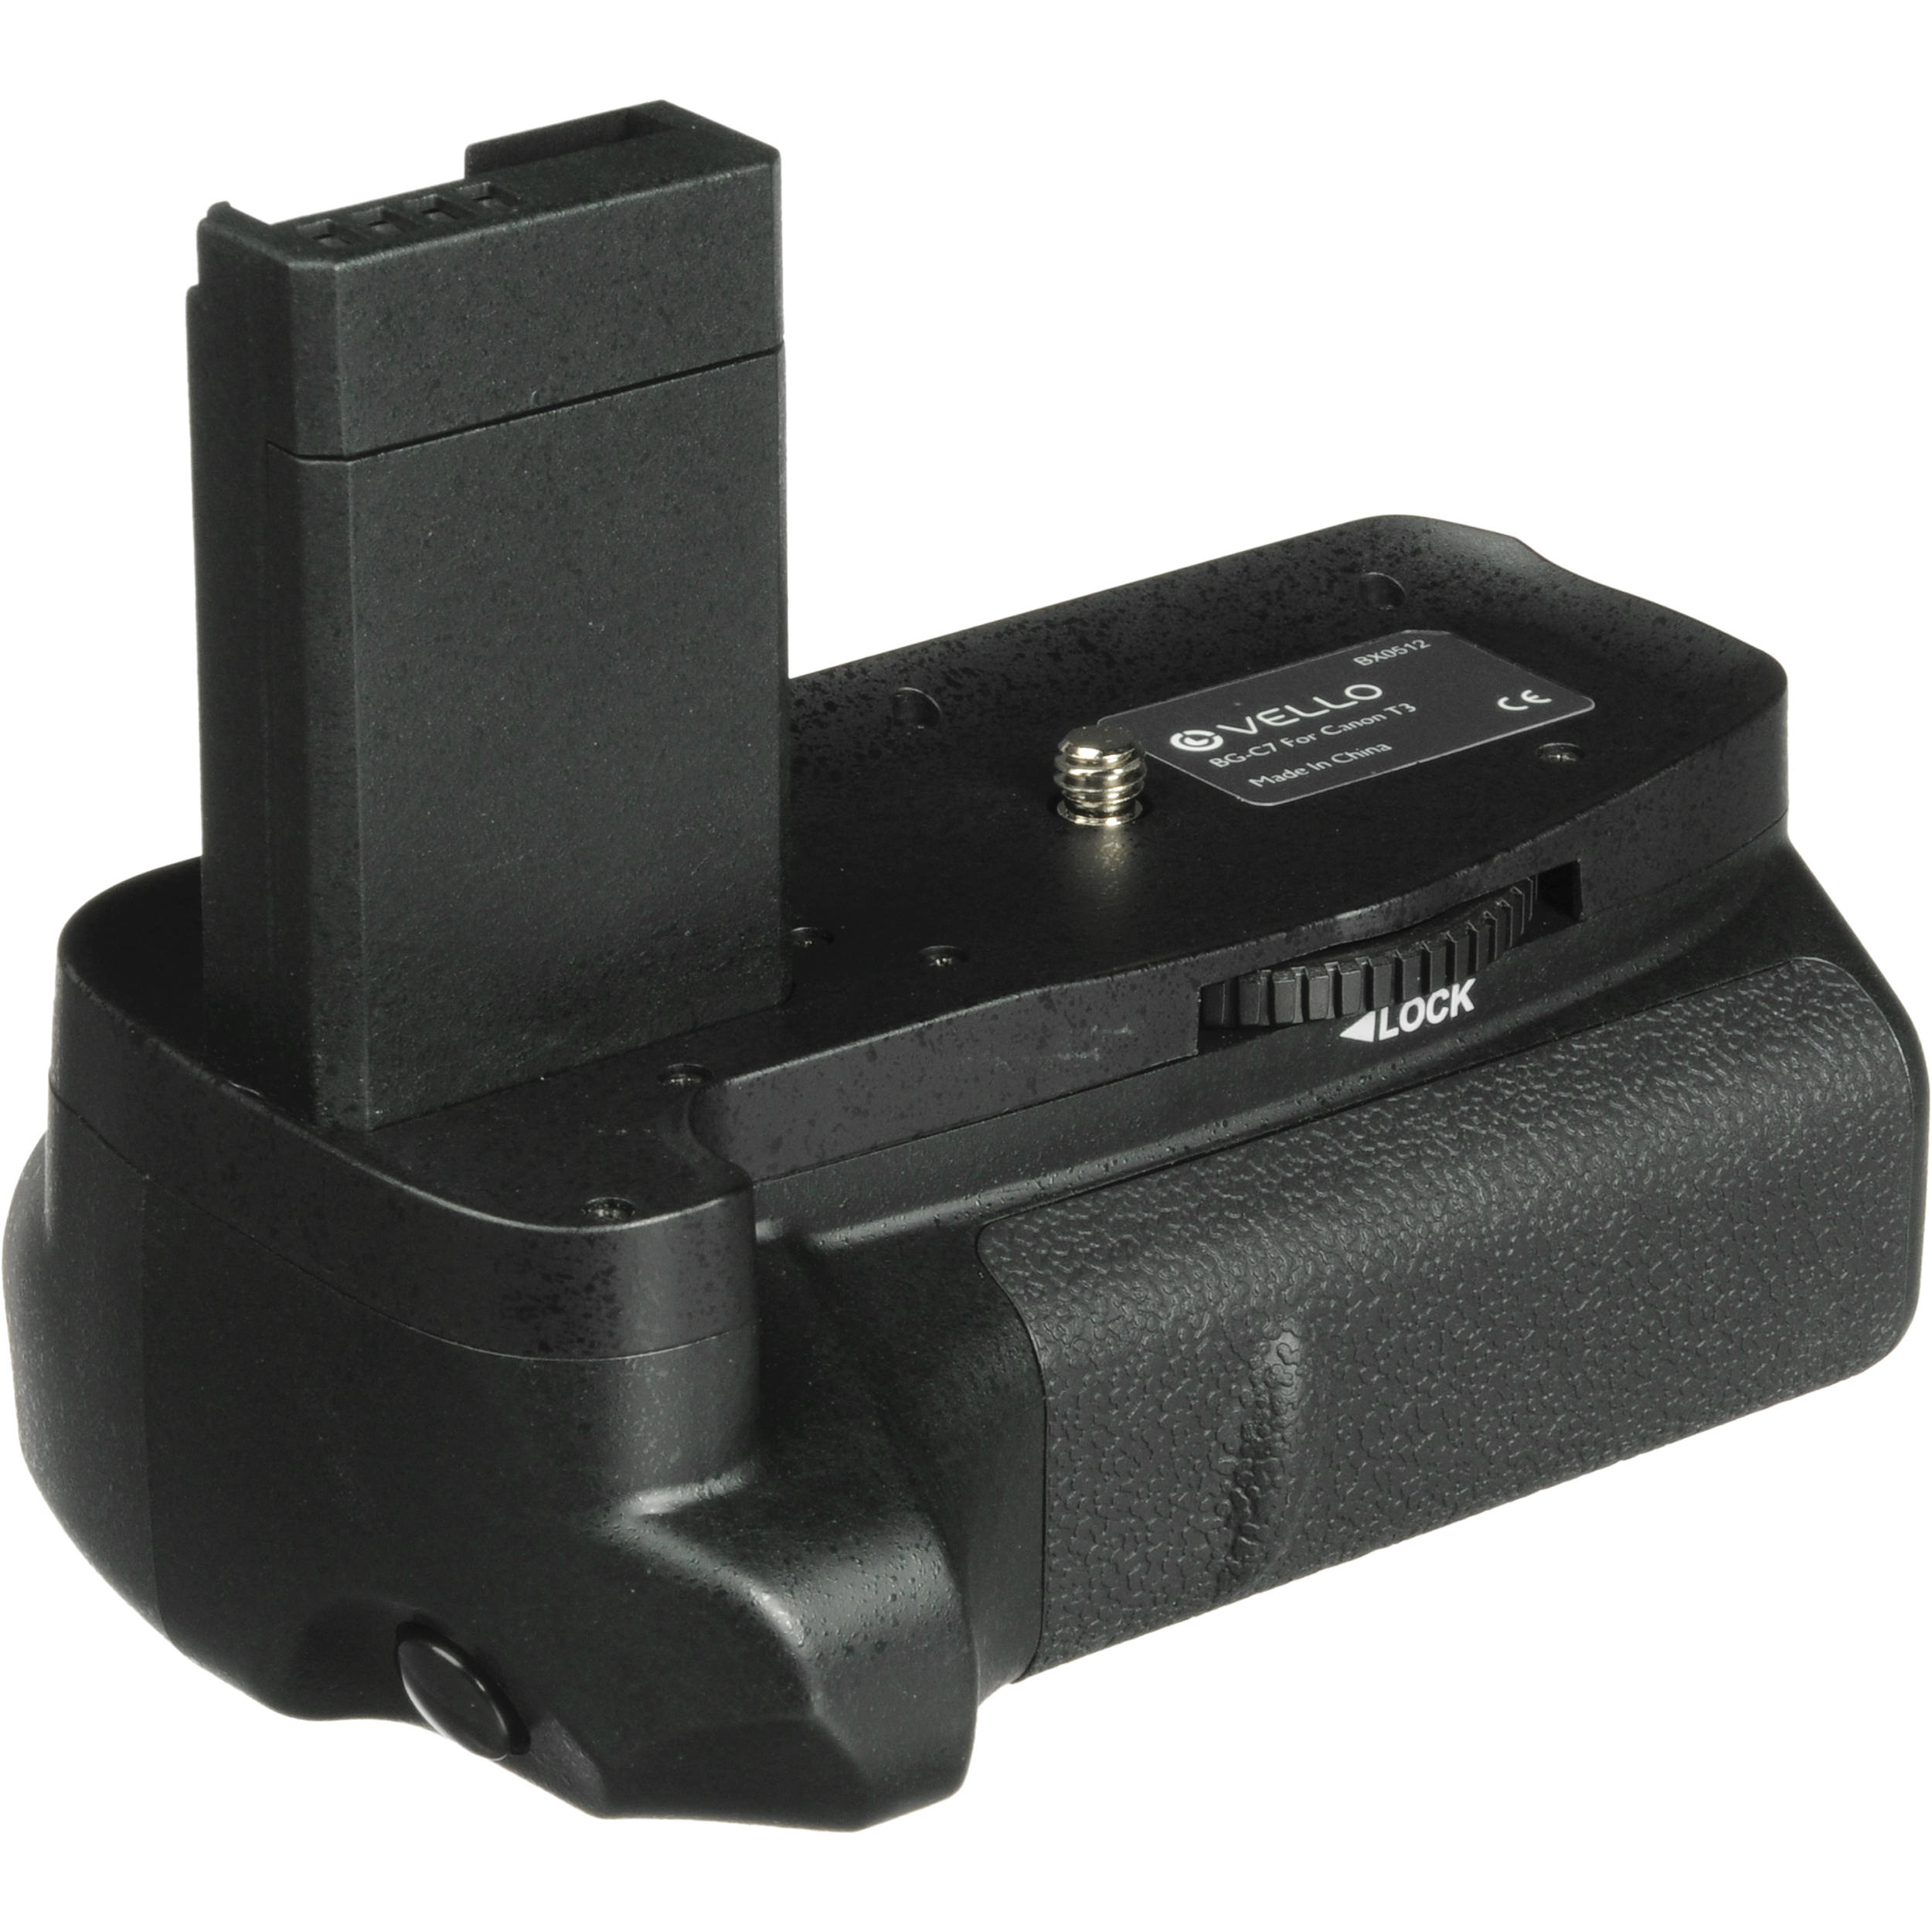 Vello BG-C7 Battery Grip for Canon EOS Rebel T3, T5 & T6 SLR Cameras